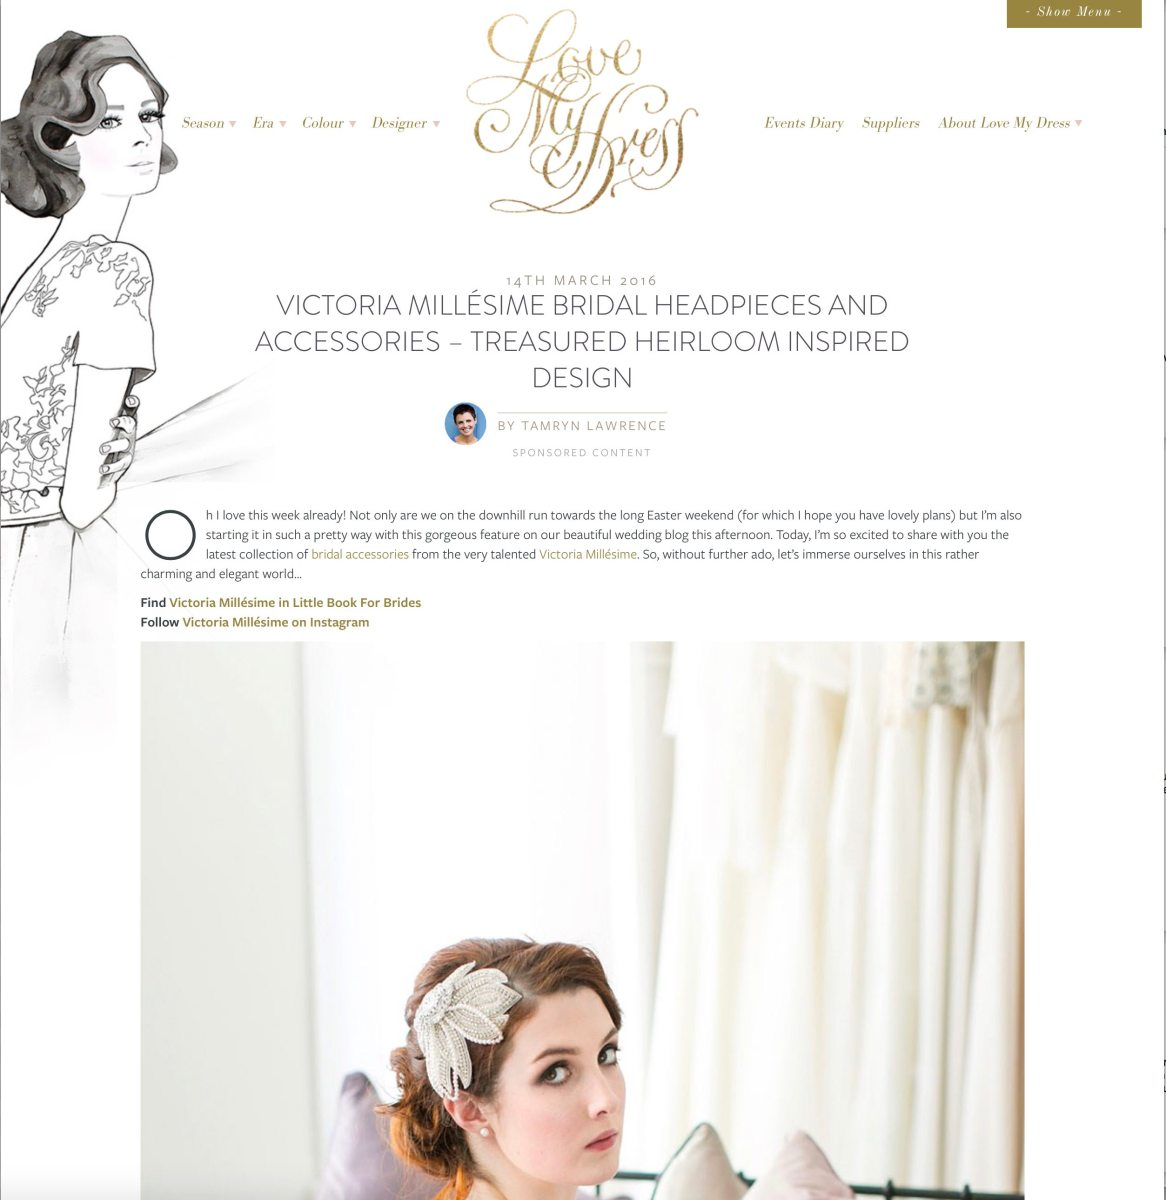 Victoria-Millesime-LoveMyDress-Celebration-Collection-Feature